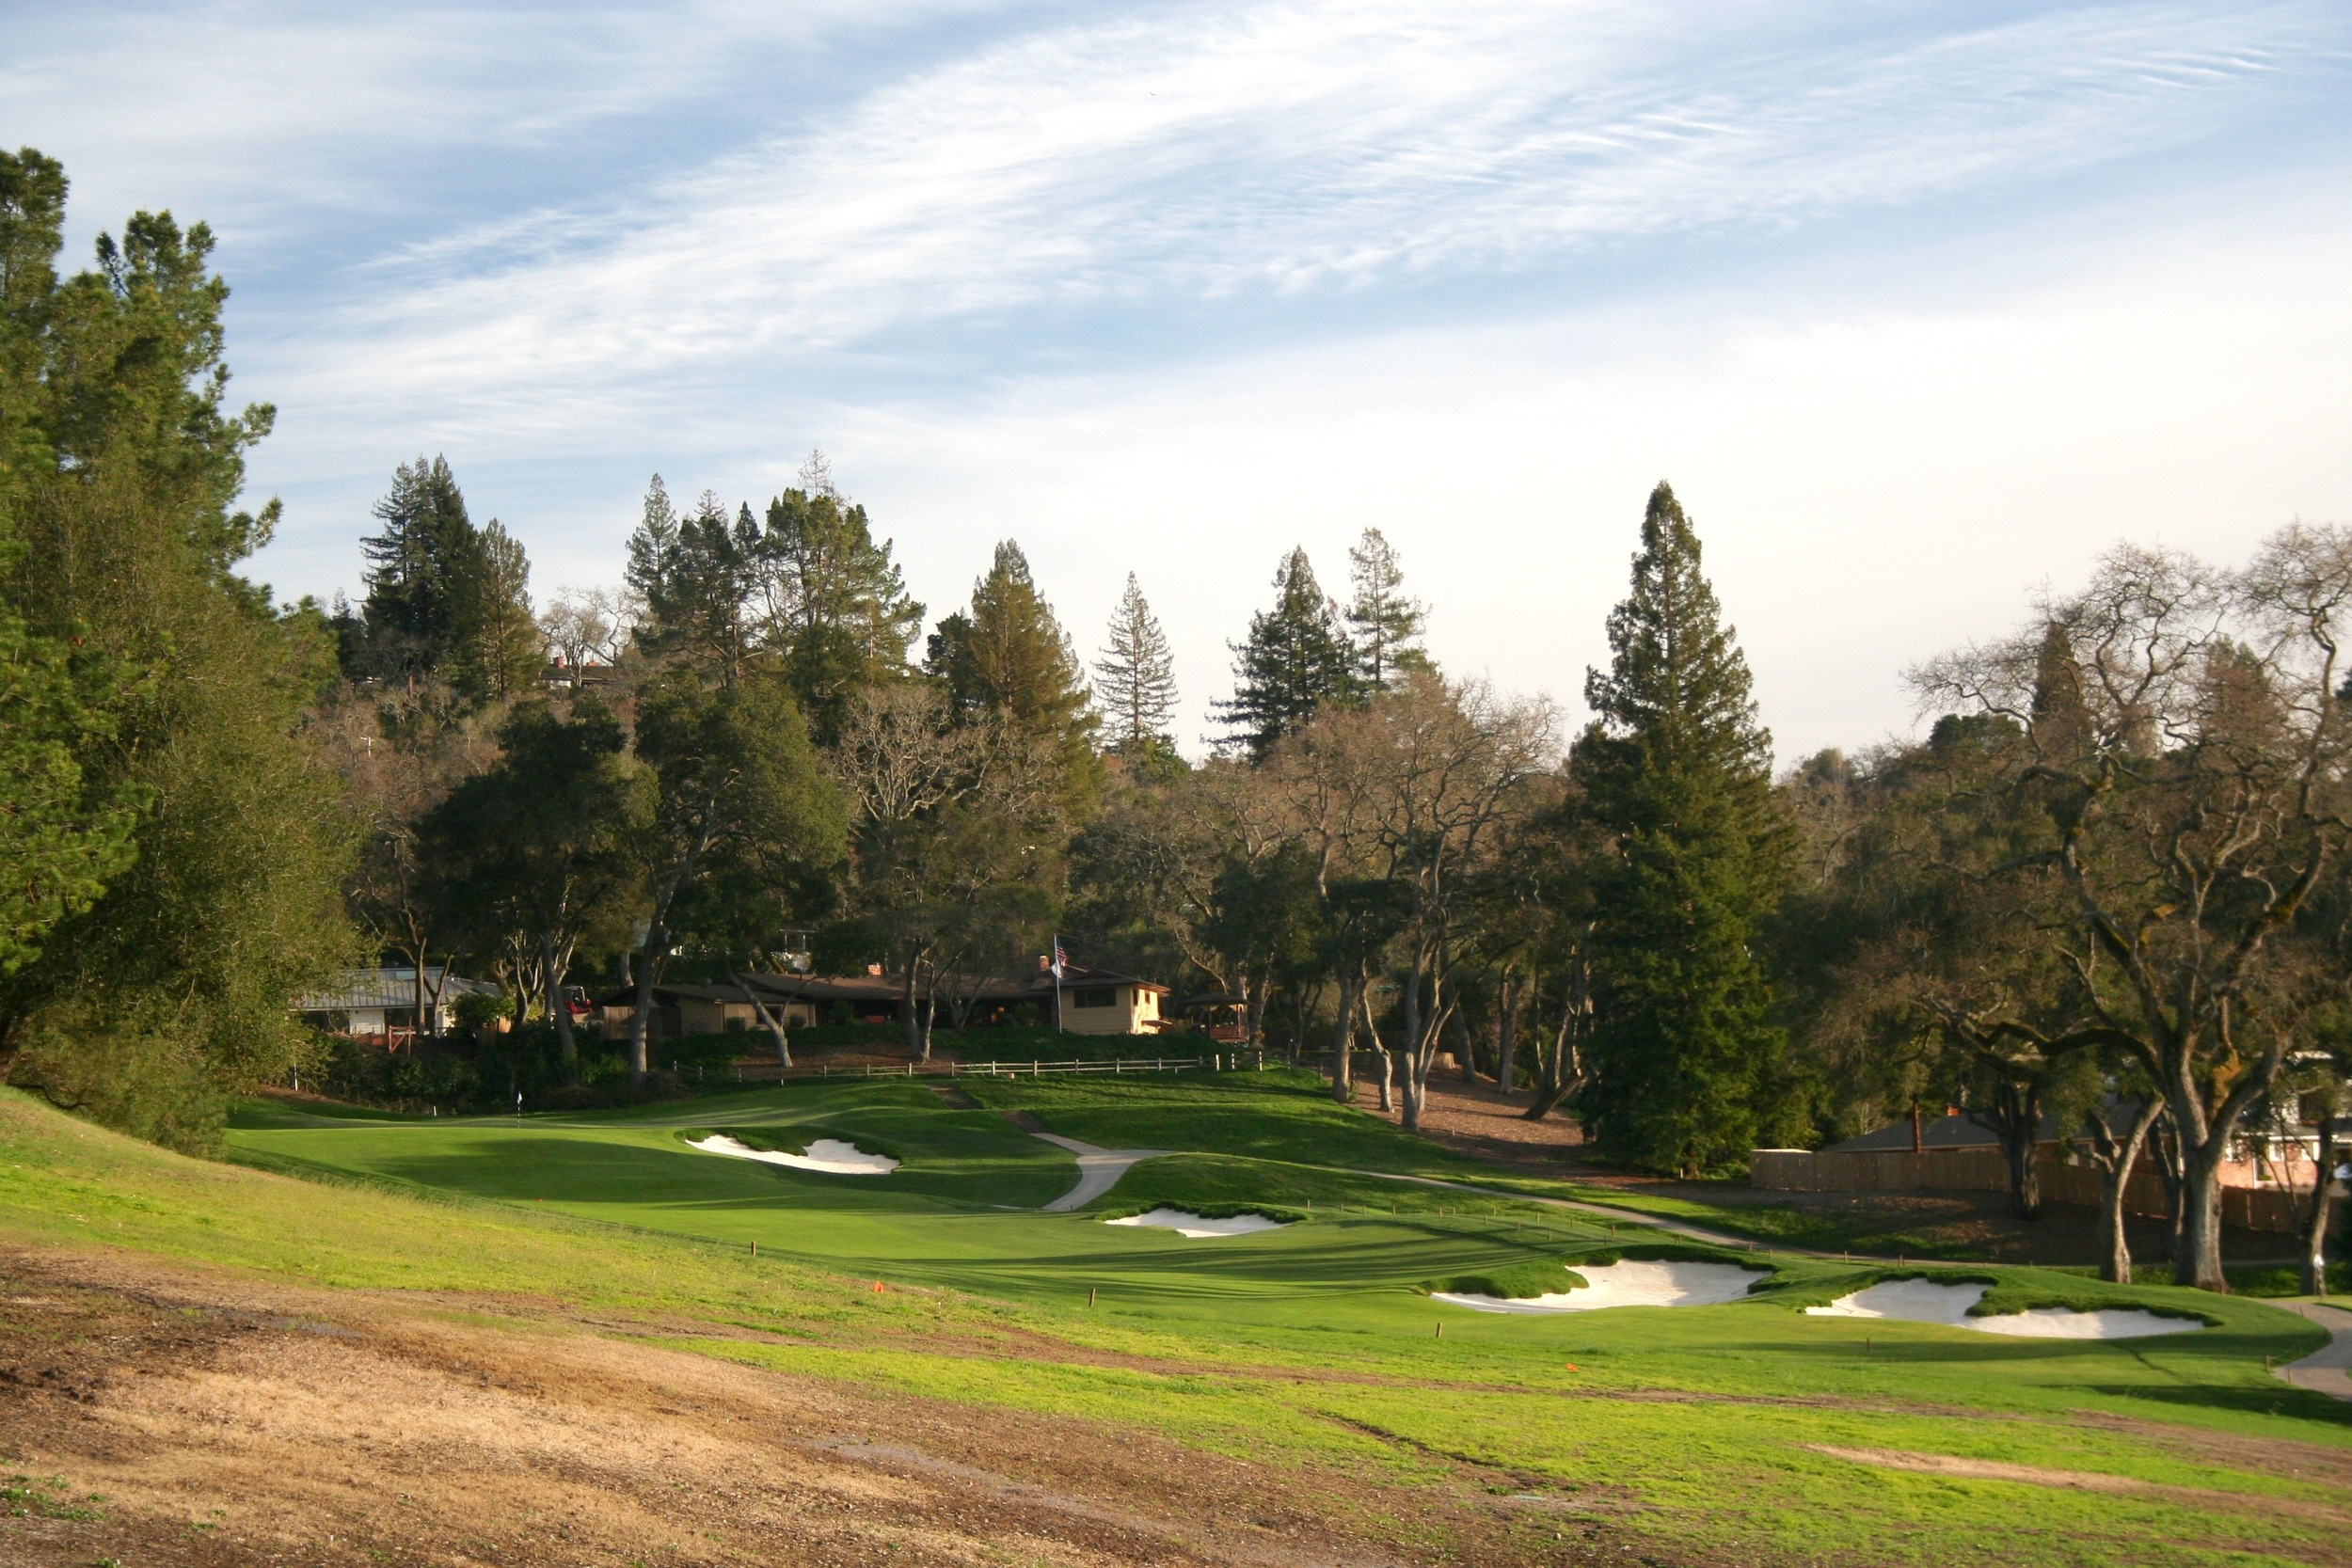 hochstein-design-orinda-cc-beforeafter-hole-7-2.jpg